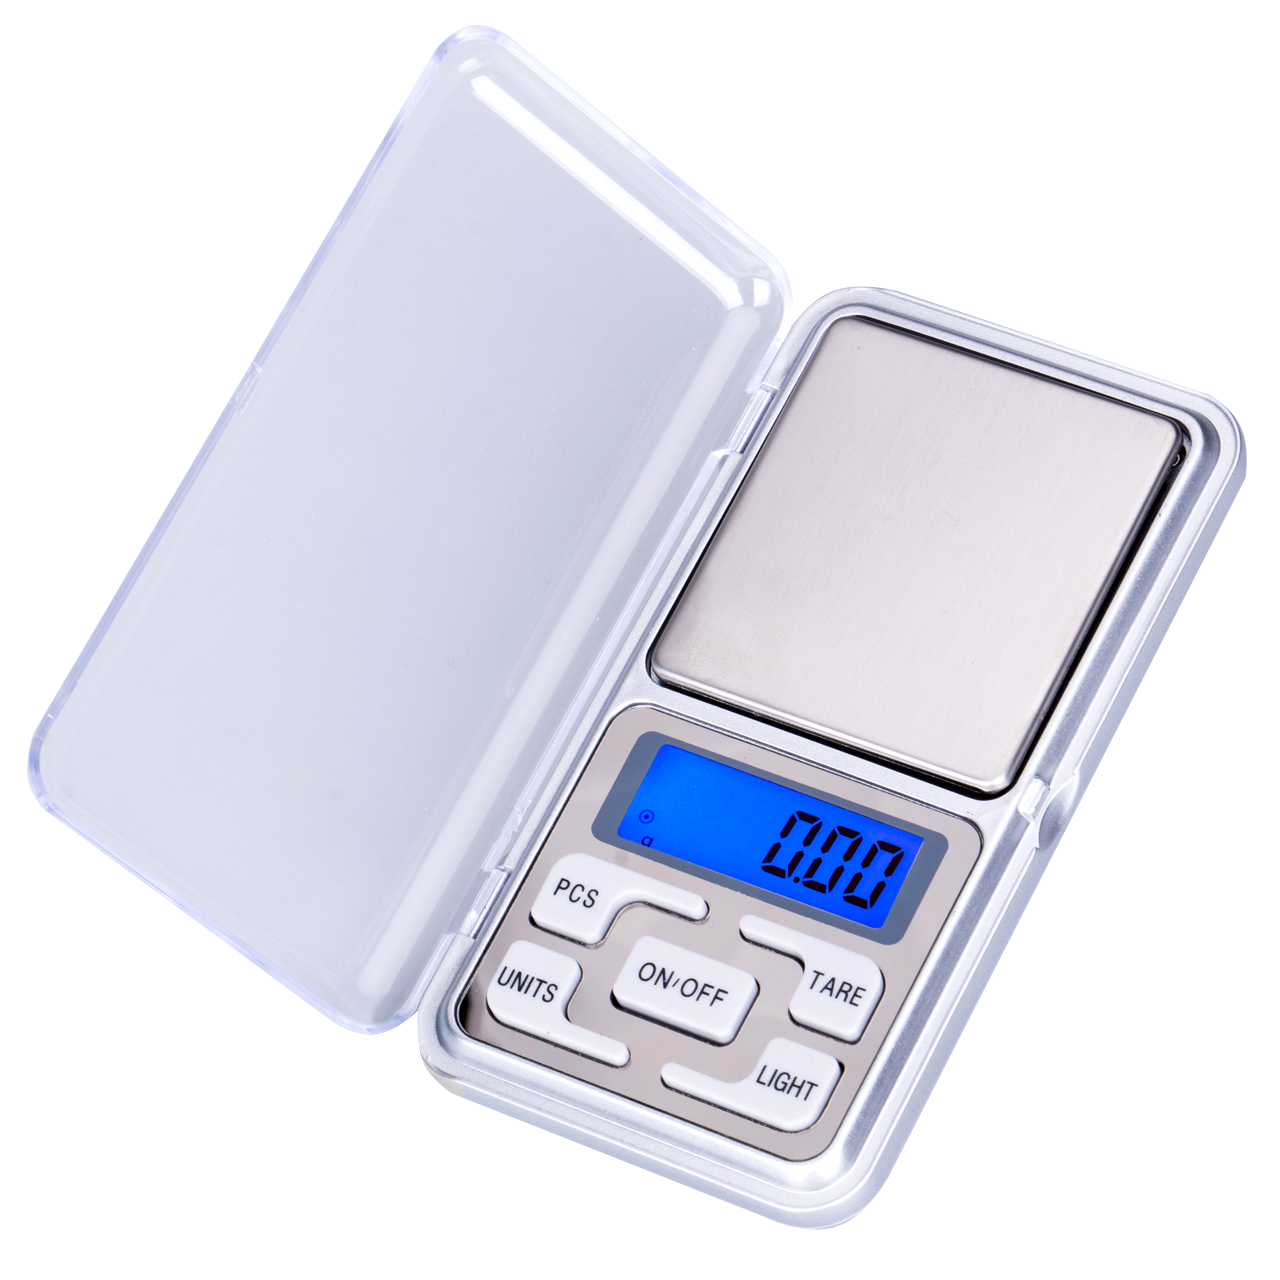 Details about Electronic Pocket Mini Digital Gold Jewelry Weighing Scale 0.01g-500g Gram